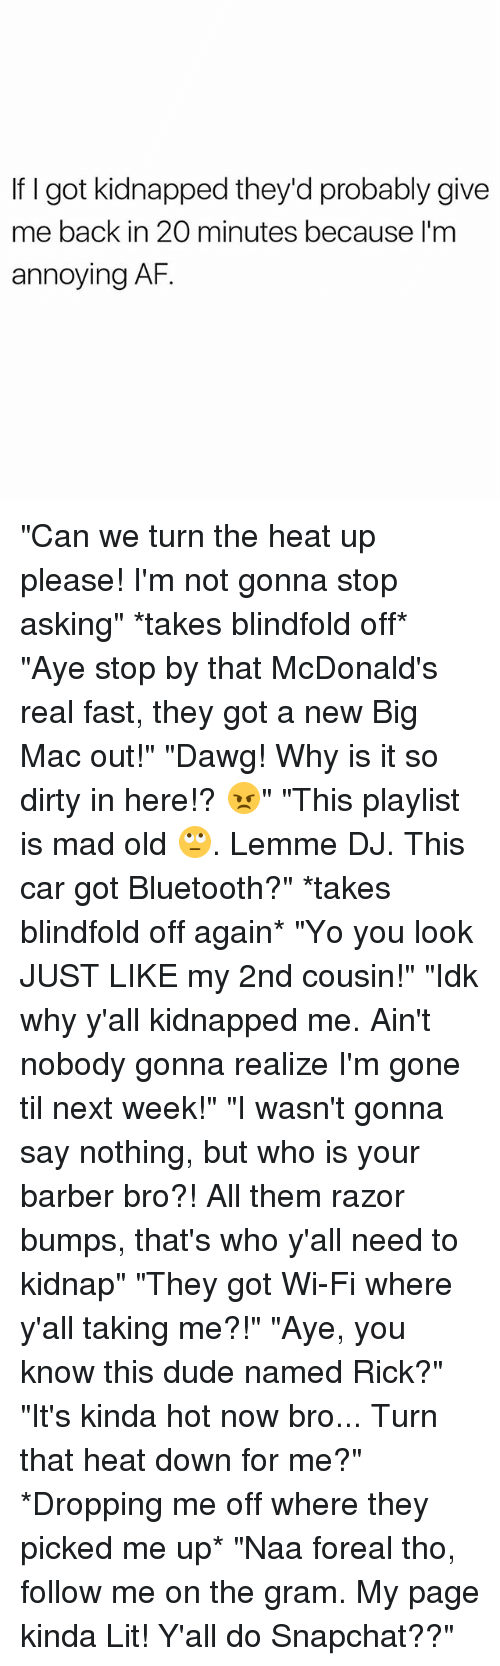 "Af, Barber, and Bluetooth: If I got kidnapped they'd probably give  me back in 20 minutes because I'm  annoying AF. ""Can we turn the heat up please! I'm not gonna stop asking"" *takes blindfold off* ""Aye stop by that McDonald's real fast, they got a new Big Mac out!"" ""Dawg! Why is it so dirty in here!? 😠"" ""This playlist is mad old 🙄. Lemme DJ. This car got Bluetooth?"" *takes blindfold off again* ""Yo you look JUST LIKE my 2nd cousin!"" ""Idk why y'all kidnapped me. Ain't nobody gonna realize I'm gone til next week!"" ""I wasn't gonna say nothing, but who is your barber bro?! All them razor bumps, that's who y'all need to kidnap"" ""They got Wi-Fi where y'all taking me?!"" ""Aye, you know this dude named Rick?"" ""It's kinda hot now bro... Turn that heat down for me?"" *Dropping me off where they picked me up* ""Naa foreal tho, follow me on the gram. My page kinda Lit! Y'all do Snapchat??"""